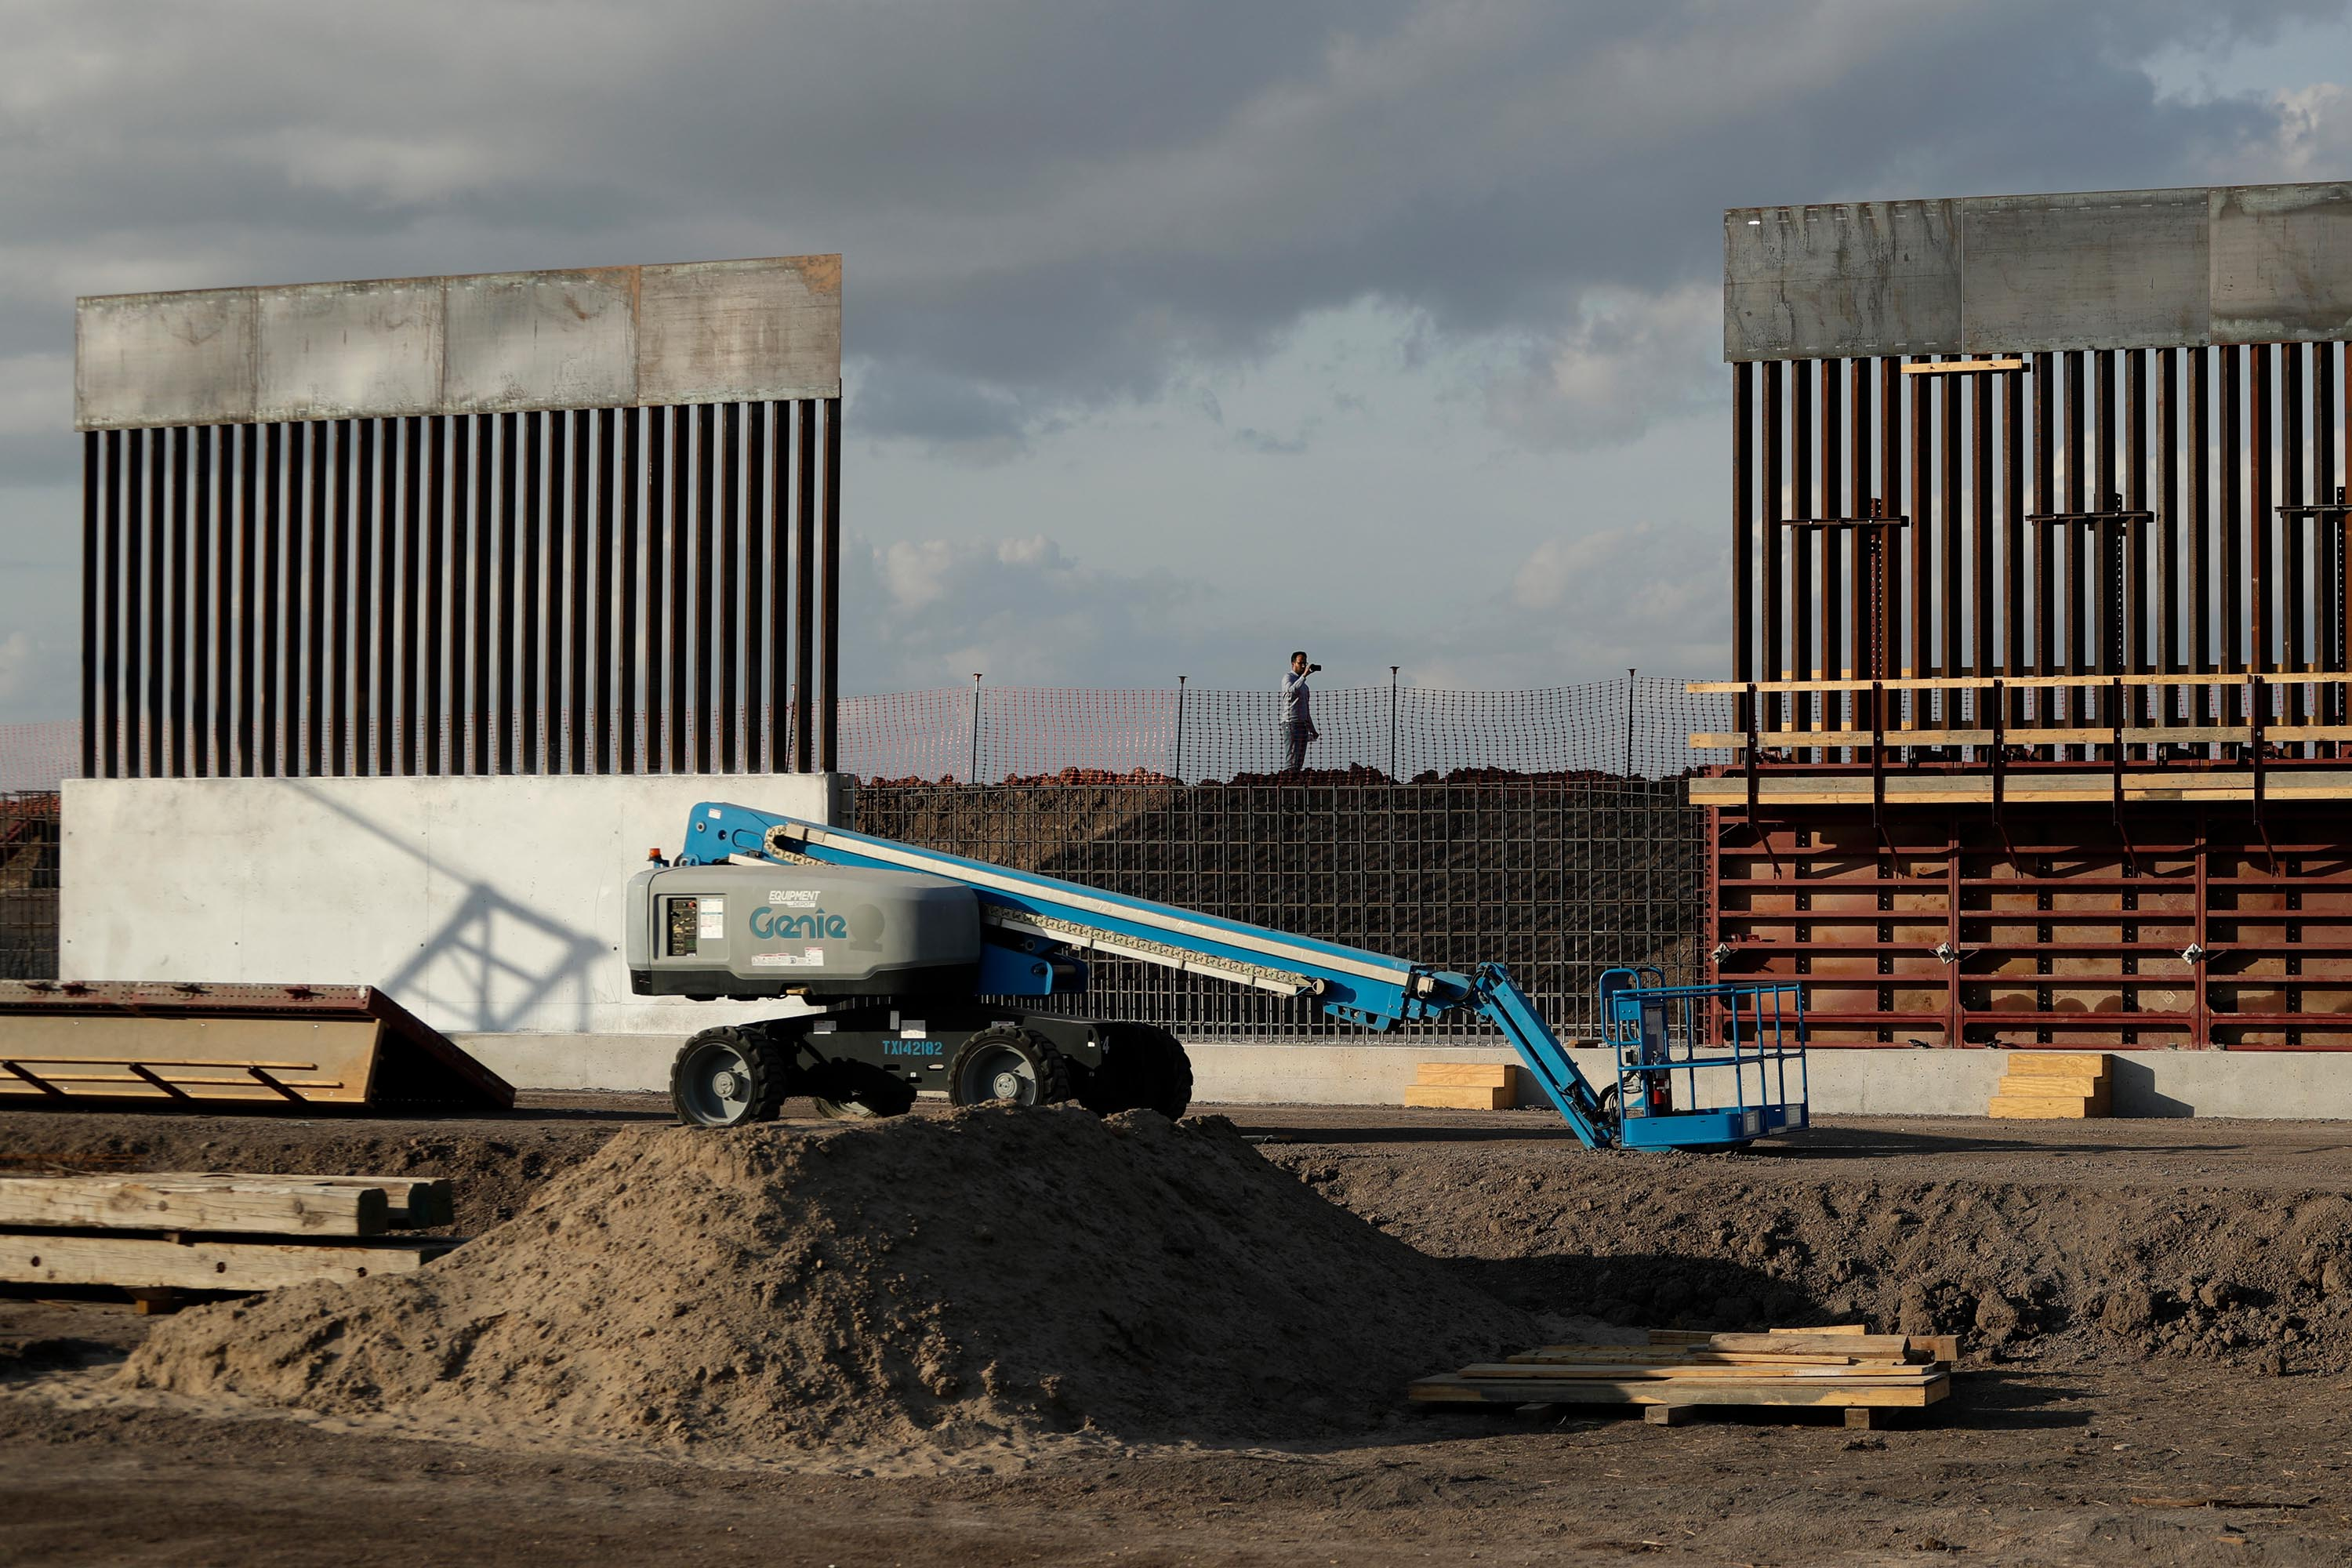 Federal judge blocks administration from diverting some funds for border wall